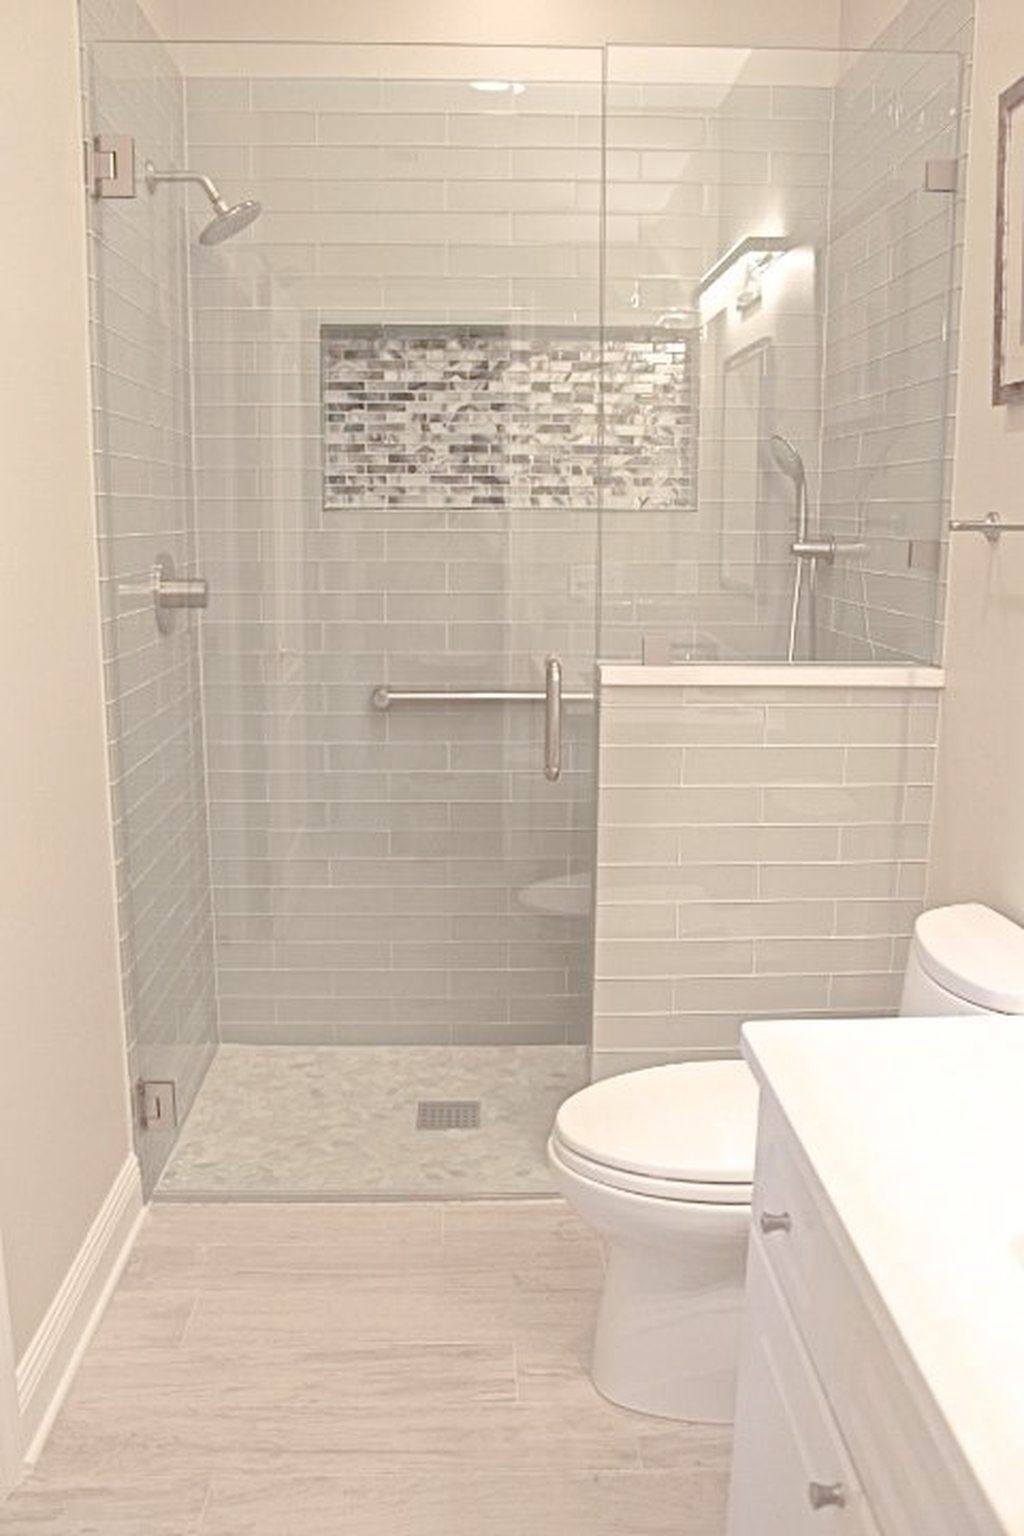 Bathroom Ideas For Elderly Bathroom Decor Gray Walls Bathroom Remodel Shower Small Bathroom Bathrooms Remodel